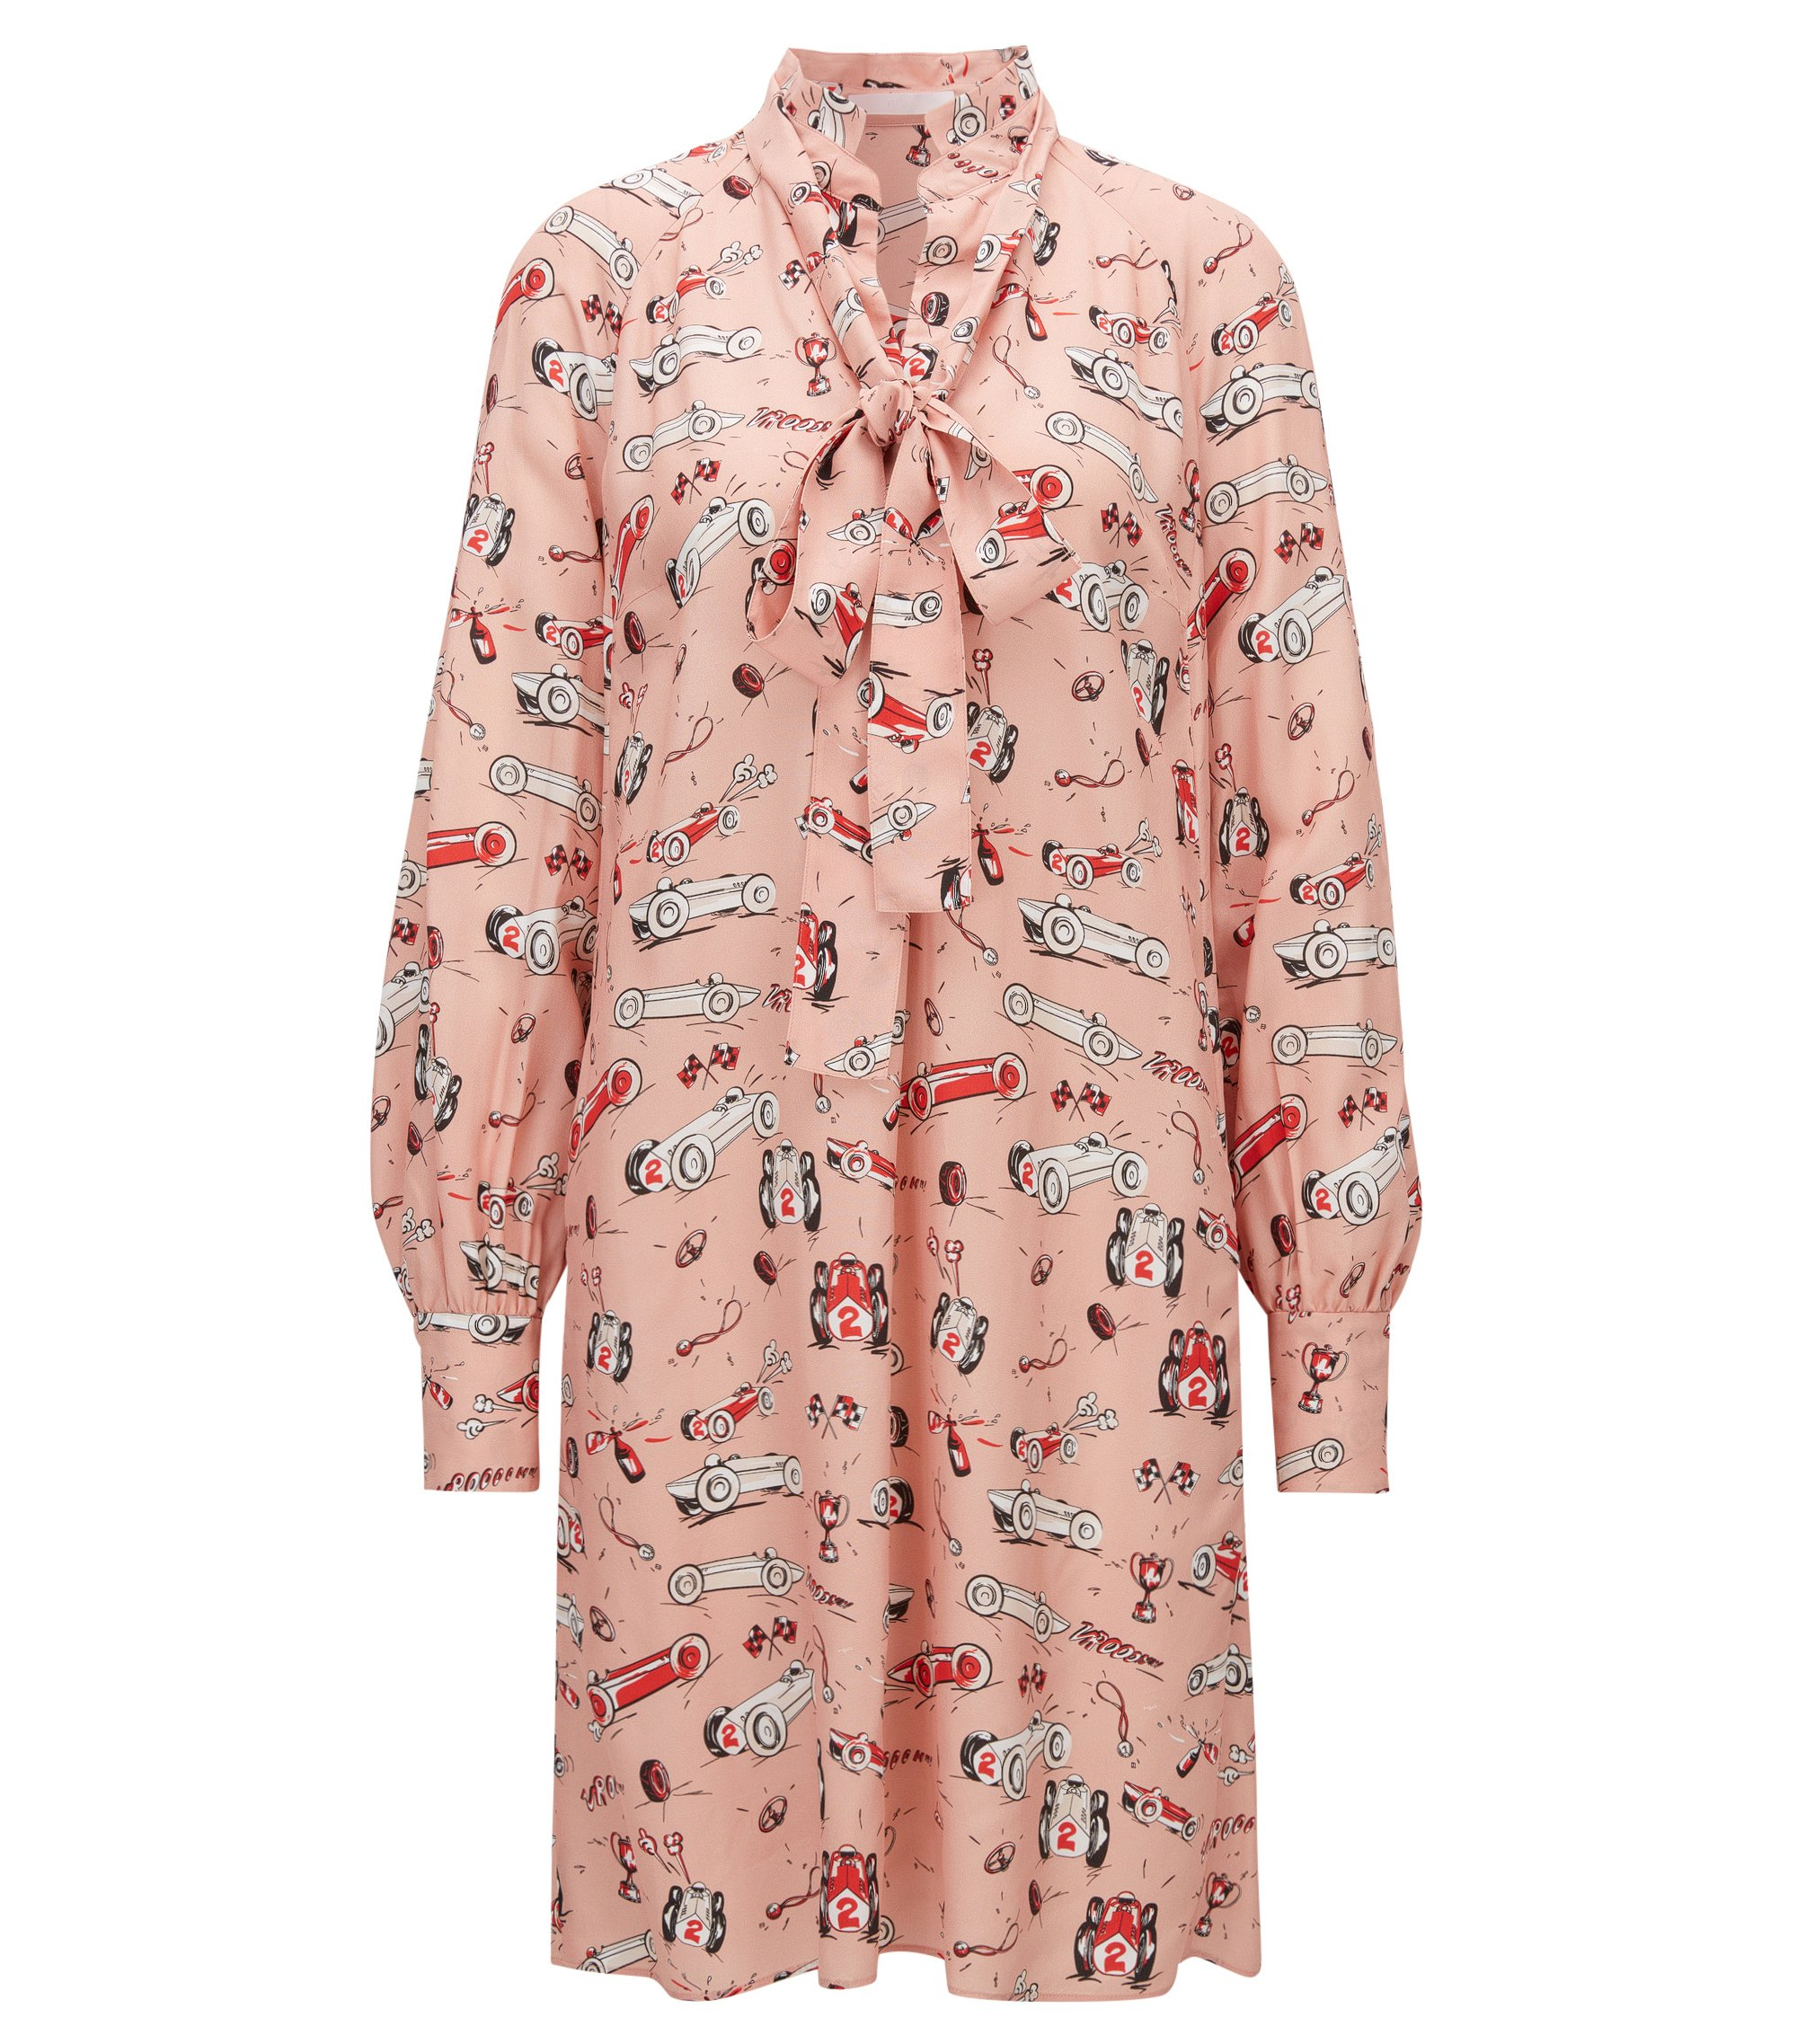 Race-car print long-sleeved dress with bow neckline, Patterned